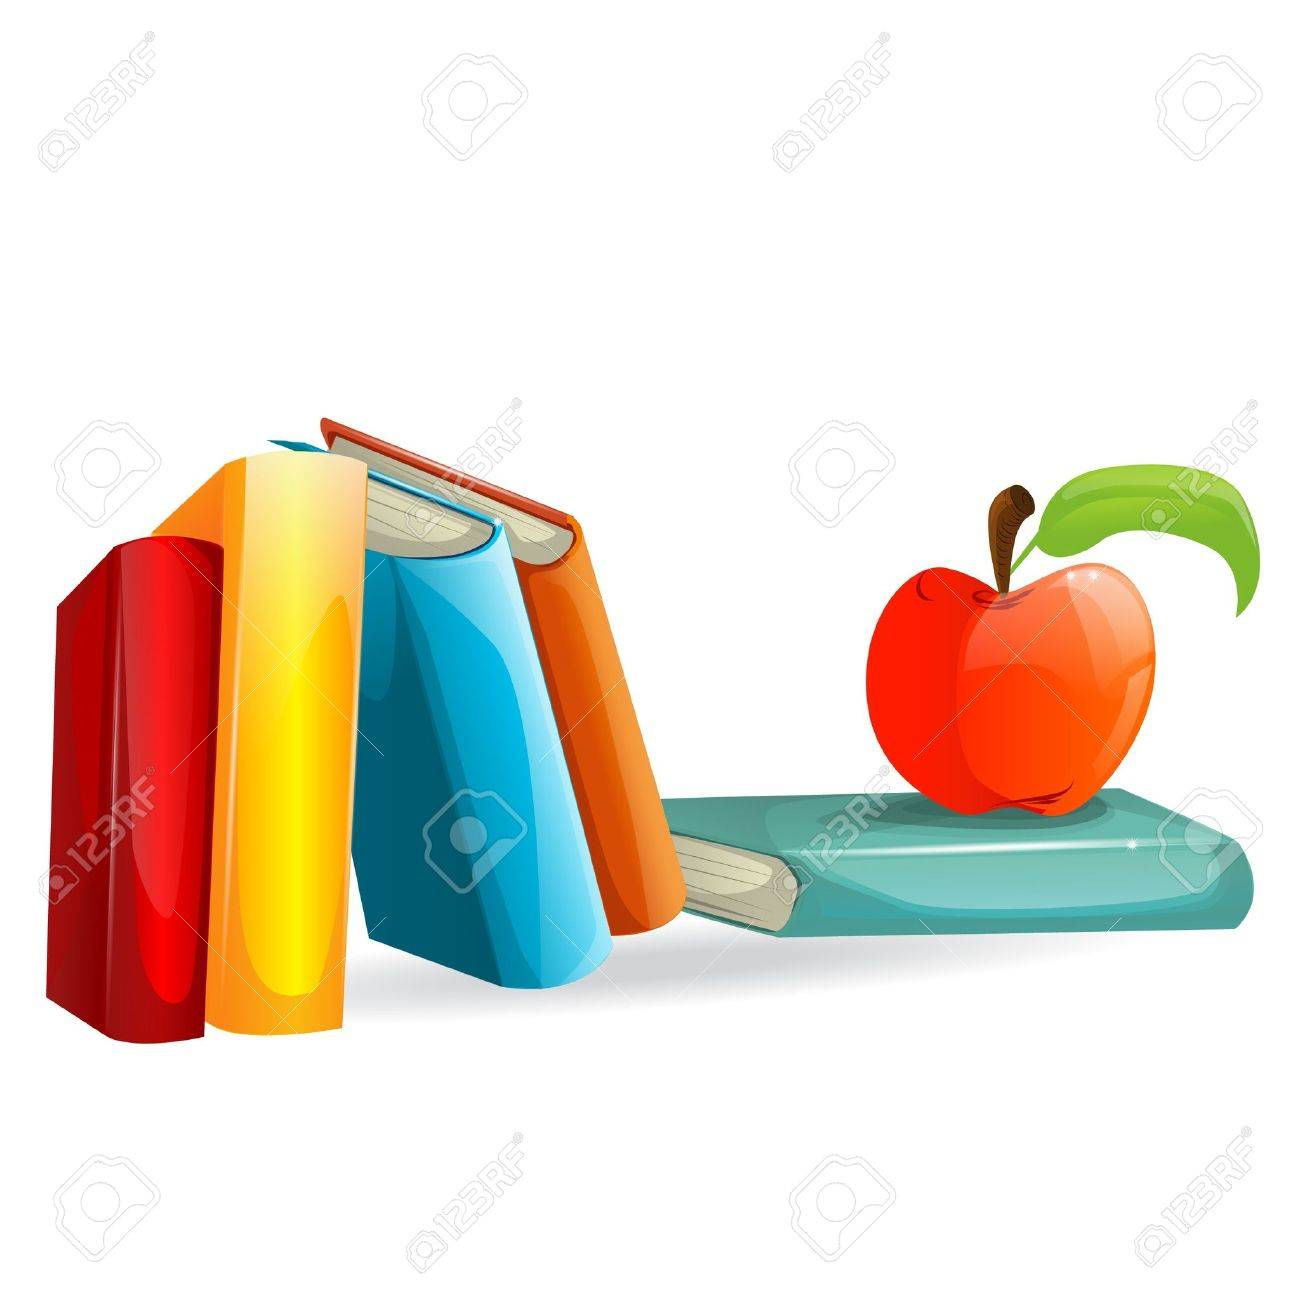 Books and an apple illustration Stock Vector - 15253528